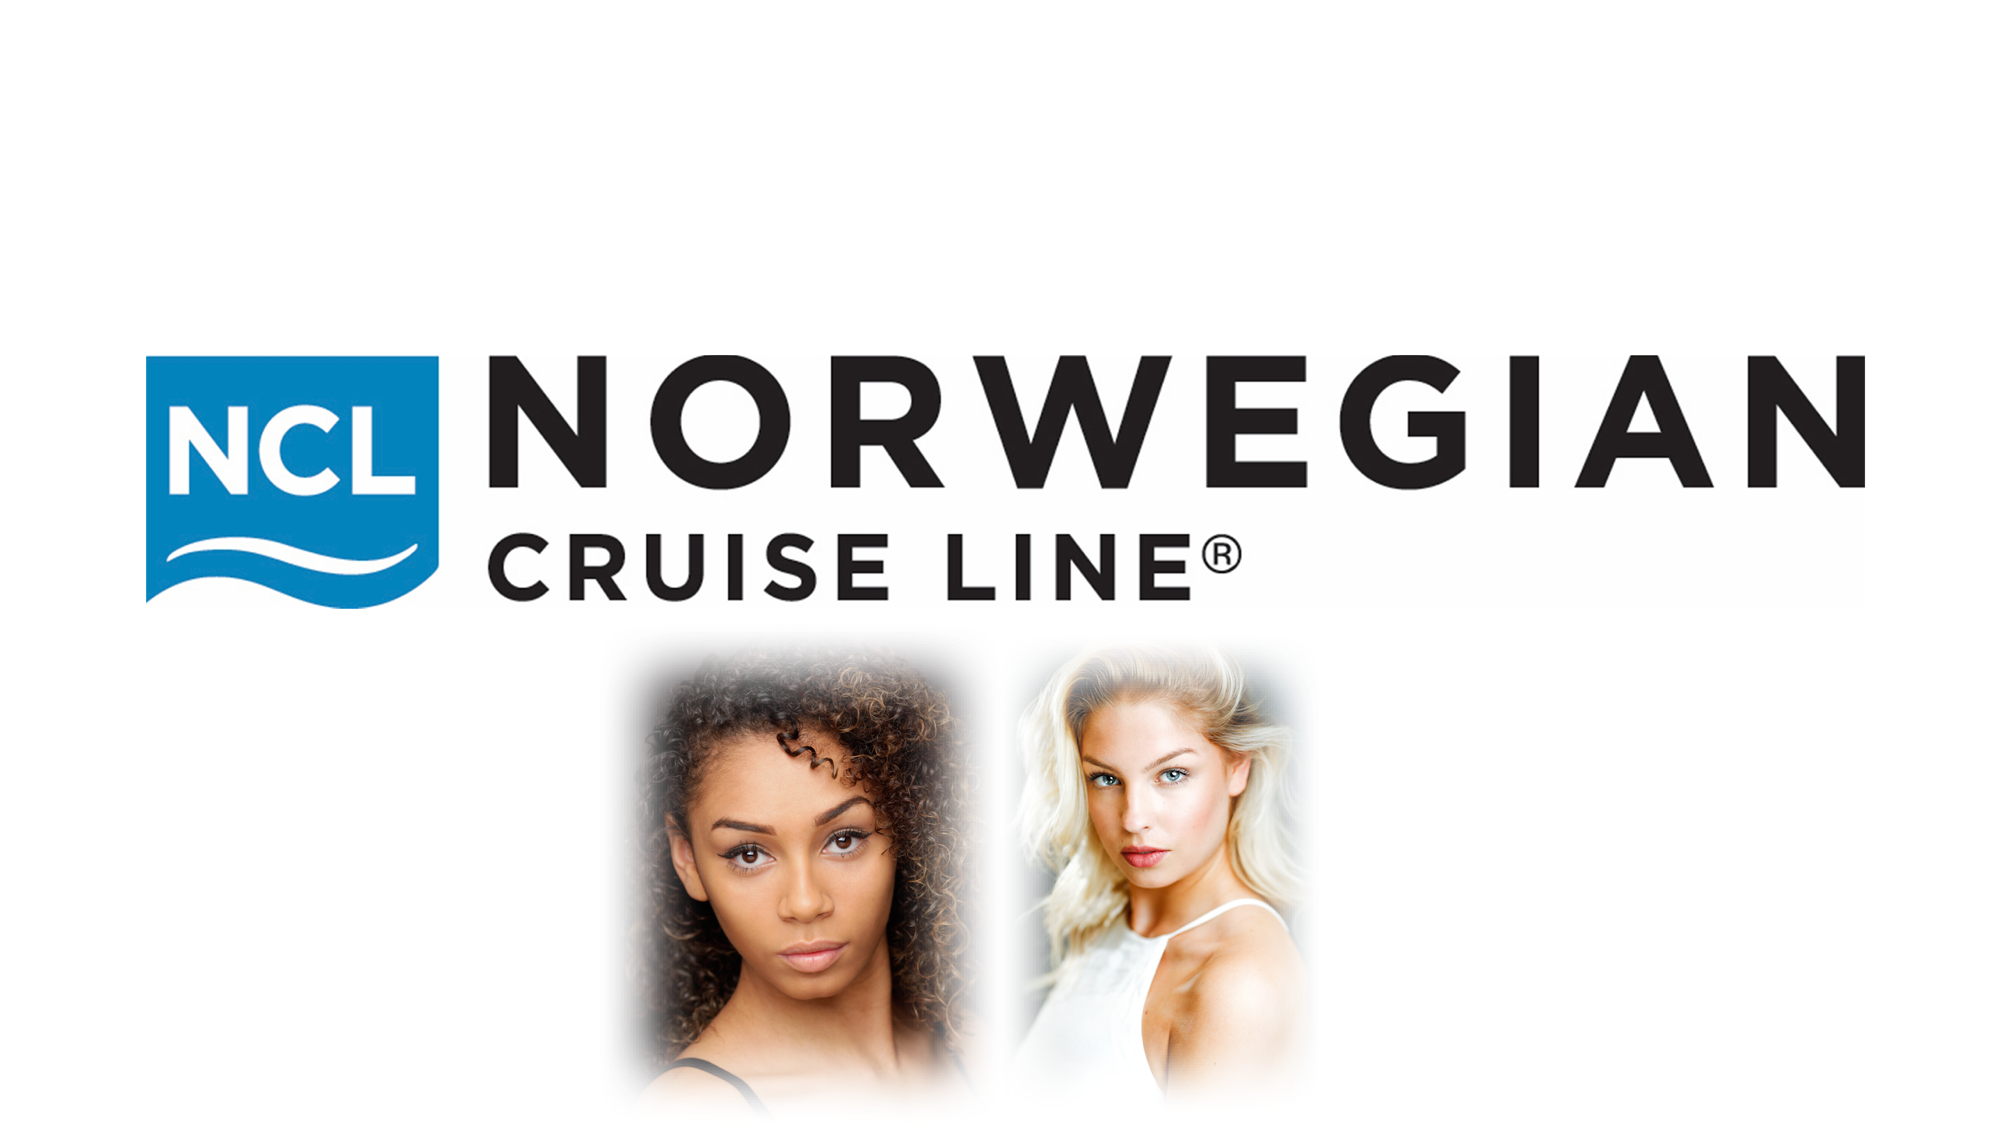 Jessica Reeve and Eleanor Watson are currently traveling with Norwegian Cruise Line